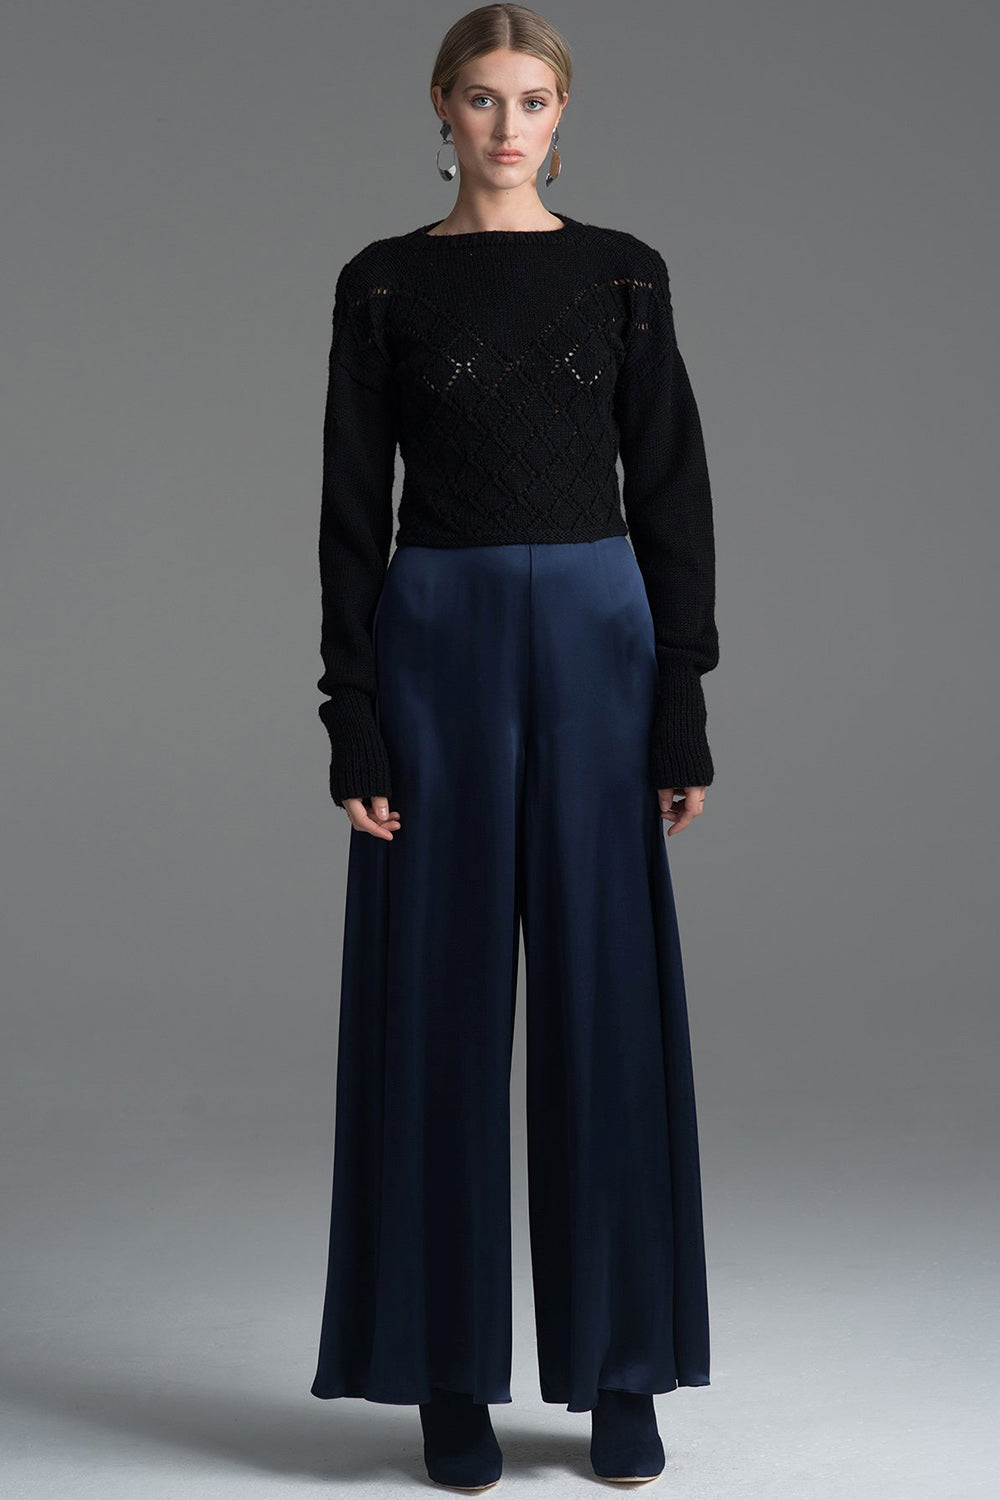 Palazzo Pant in Navy Charmeuse